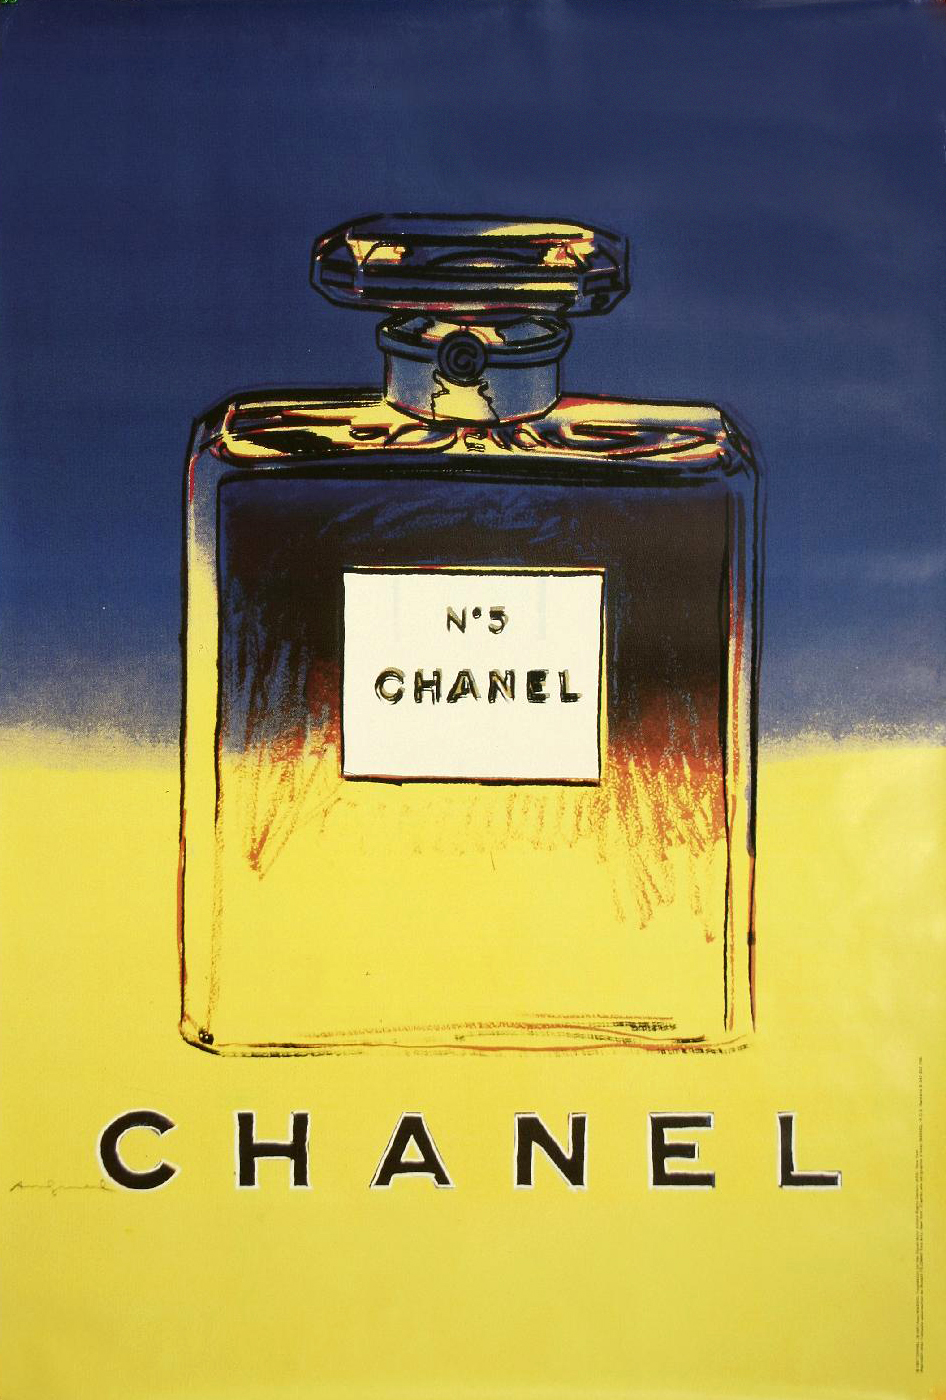 parfum chanel n 5 andy warhol l 39 affiche fran aise. Black Bedroom Furniture Sets. Home Design Ideas